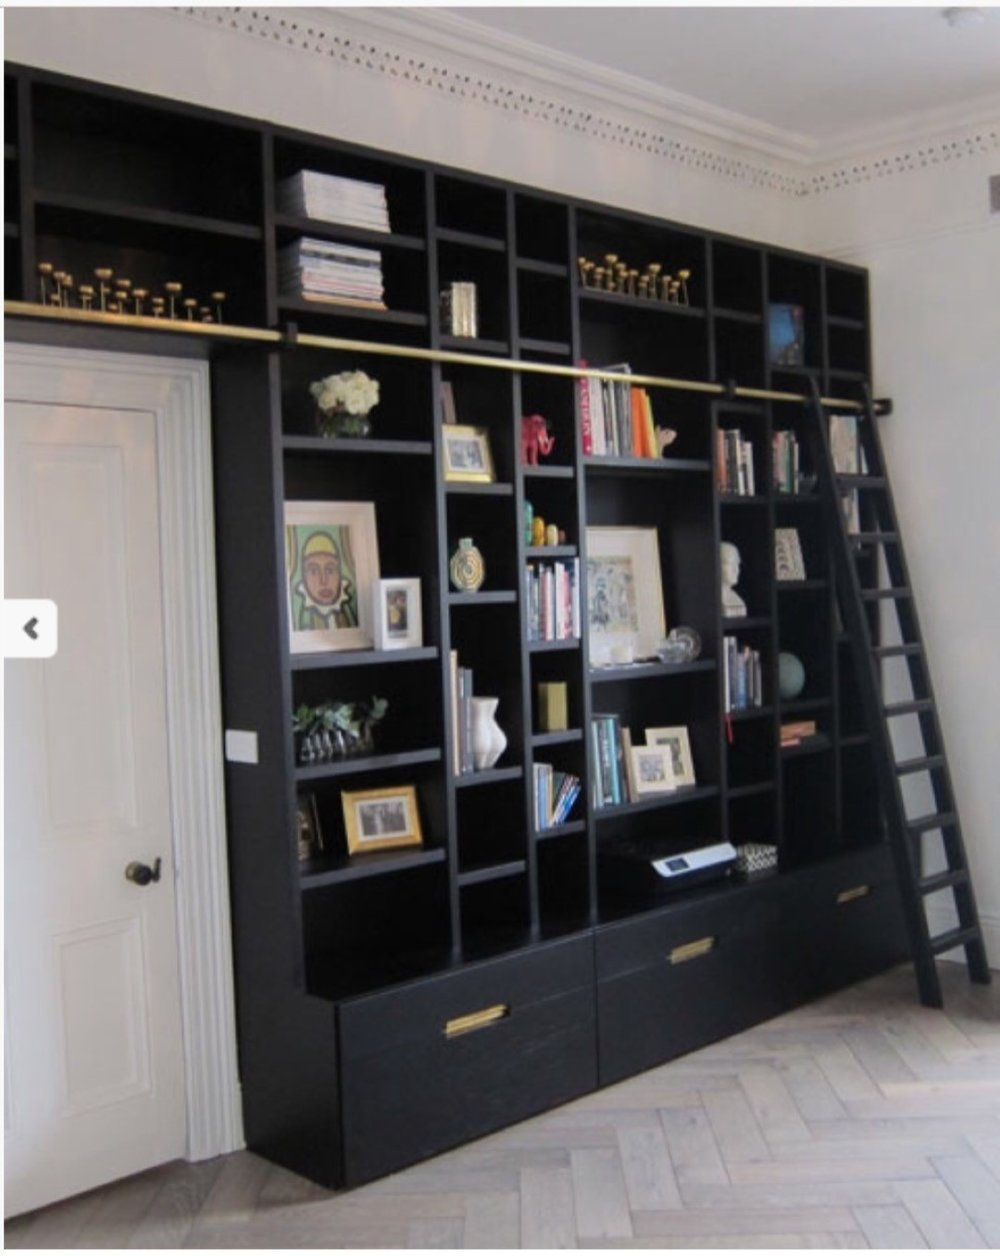 Pinterest Bookcase Mary Kennedy.jpg